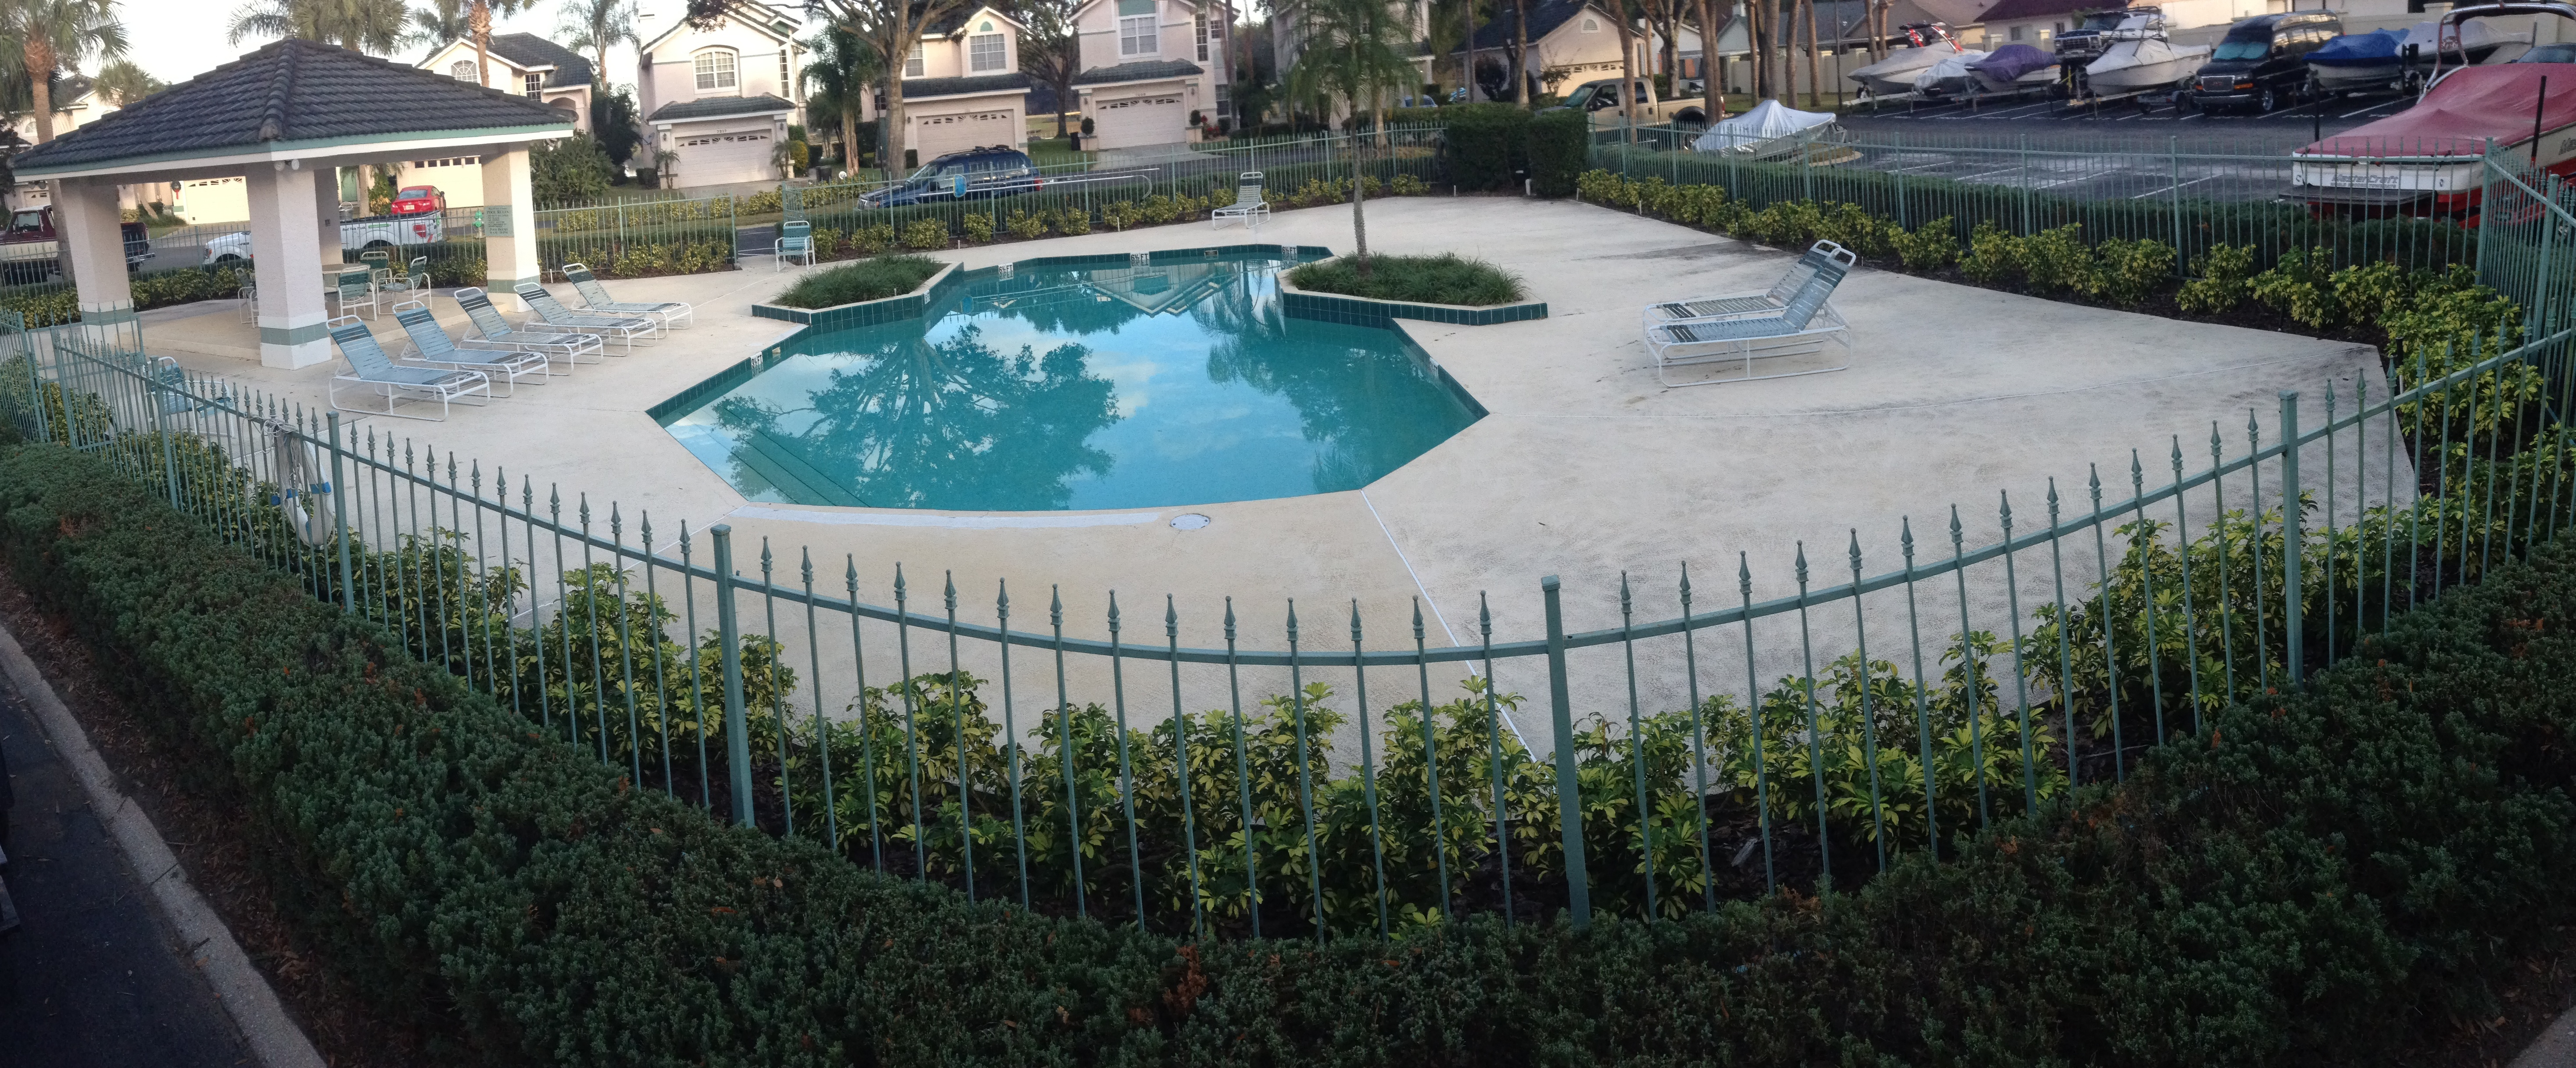 Common Area Pressure Washing For H O A S In The Orlando